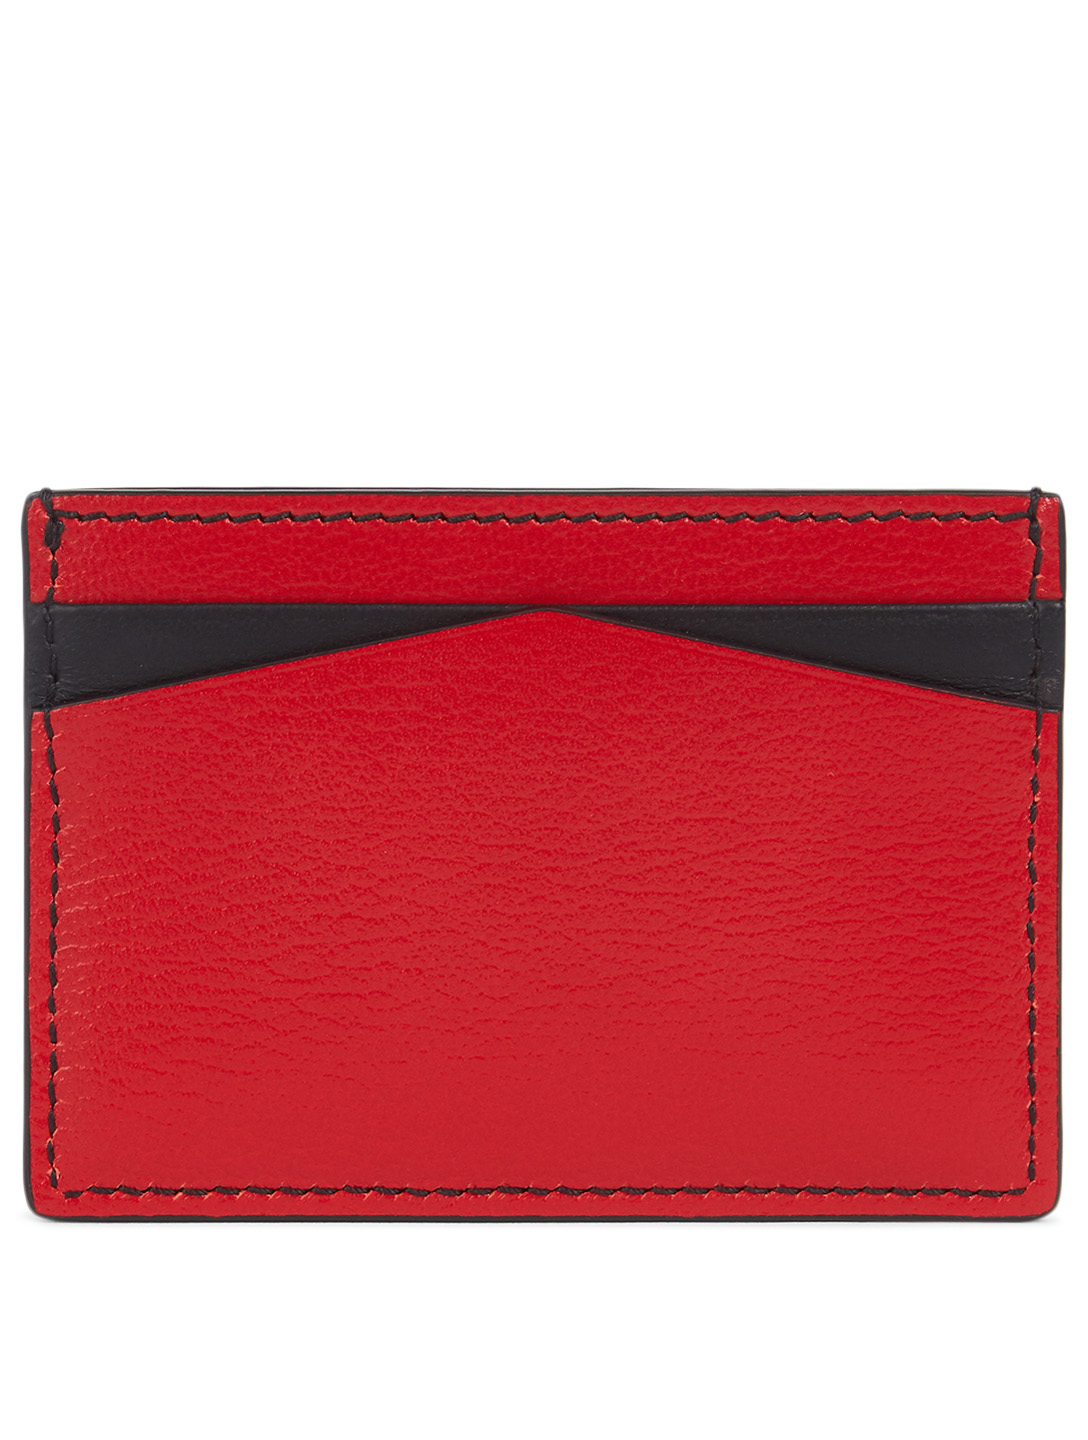 ALEXANDER MCQUEEN Skull And Stud Leather Card Holder Women's Red